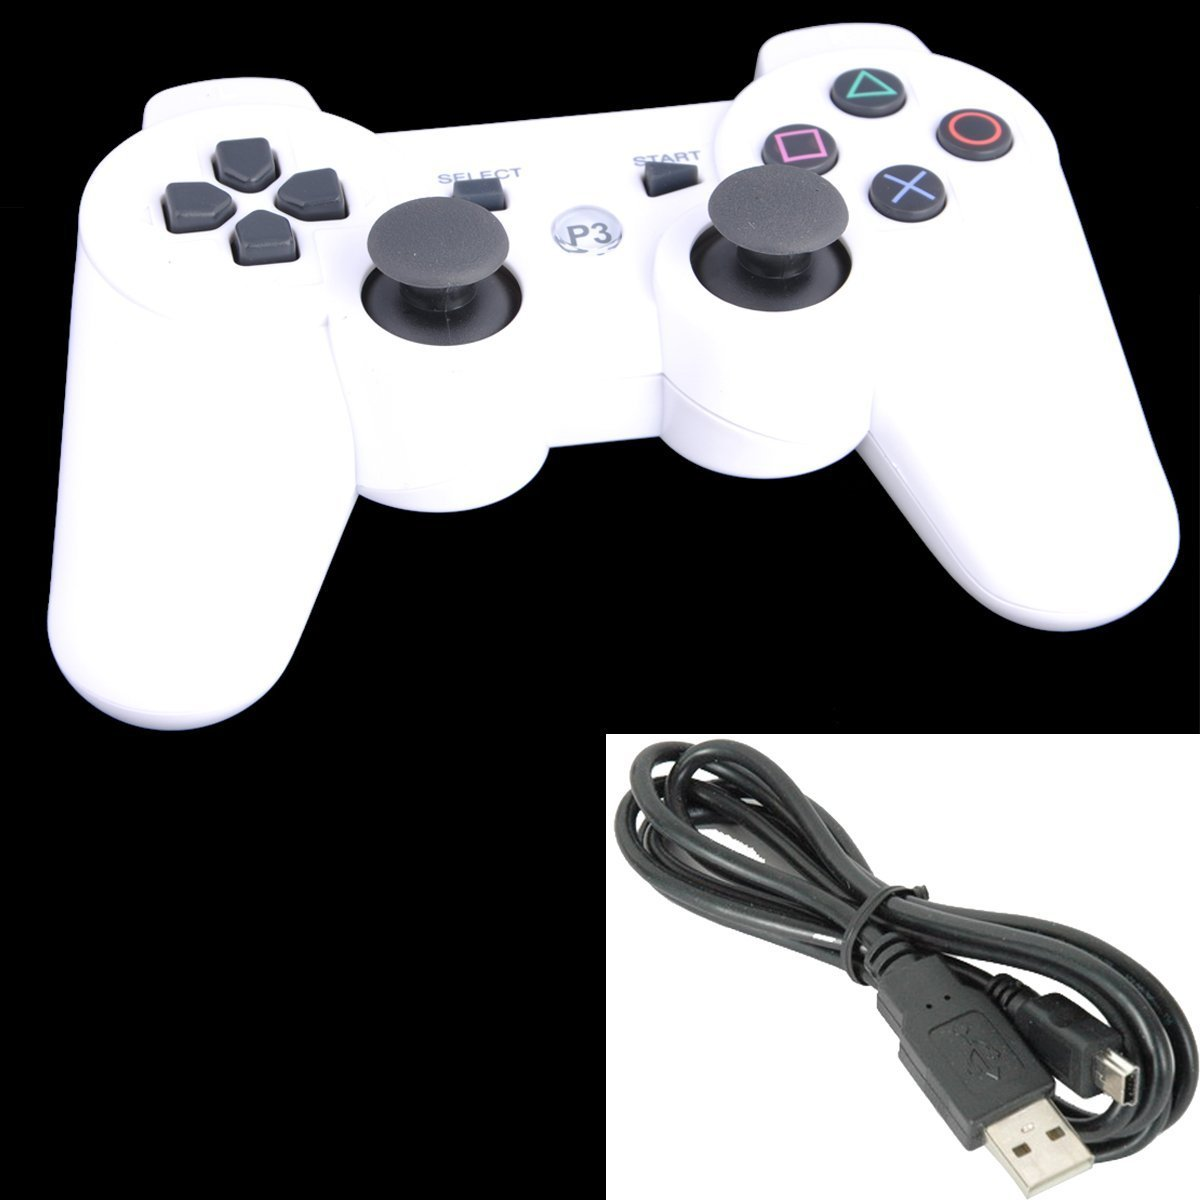 Elant Bluetooth Wireless Controller For Sony Playstation 3 Ps3 6 Axis Gamepad Joypad Dualshock with Charging Cable 11 Colors Available (white) oem playstation 3 ps3 2 4 wirless ps2 wireless controller